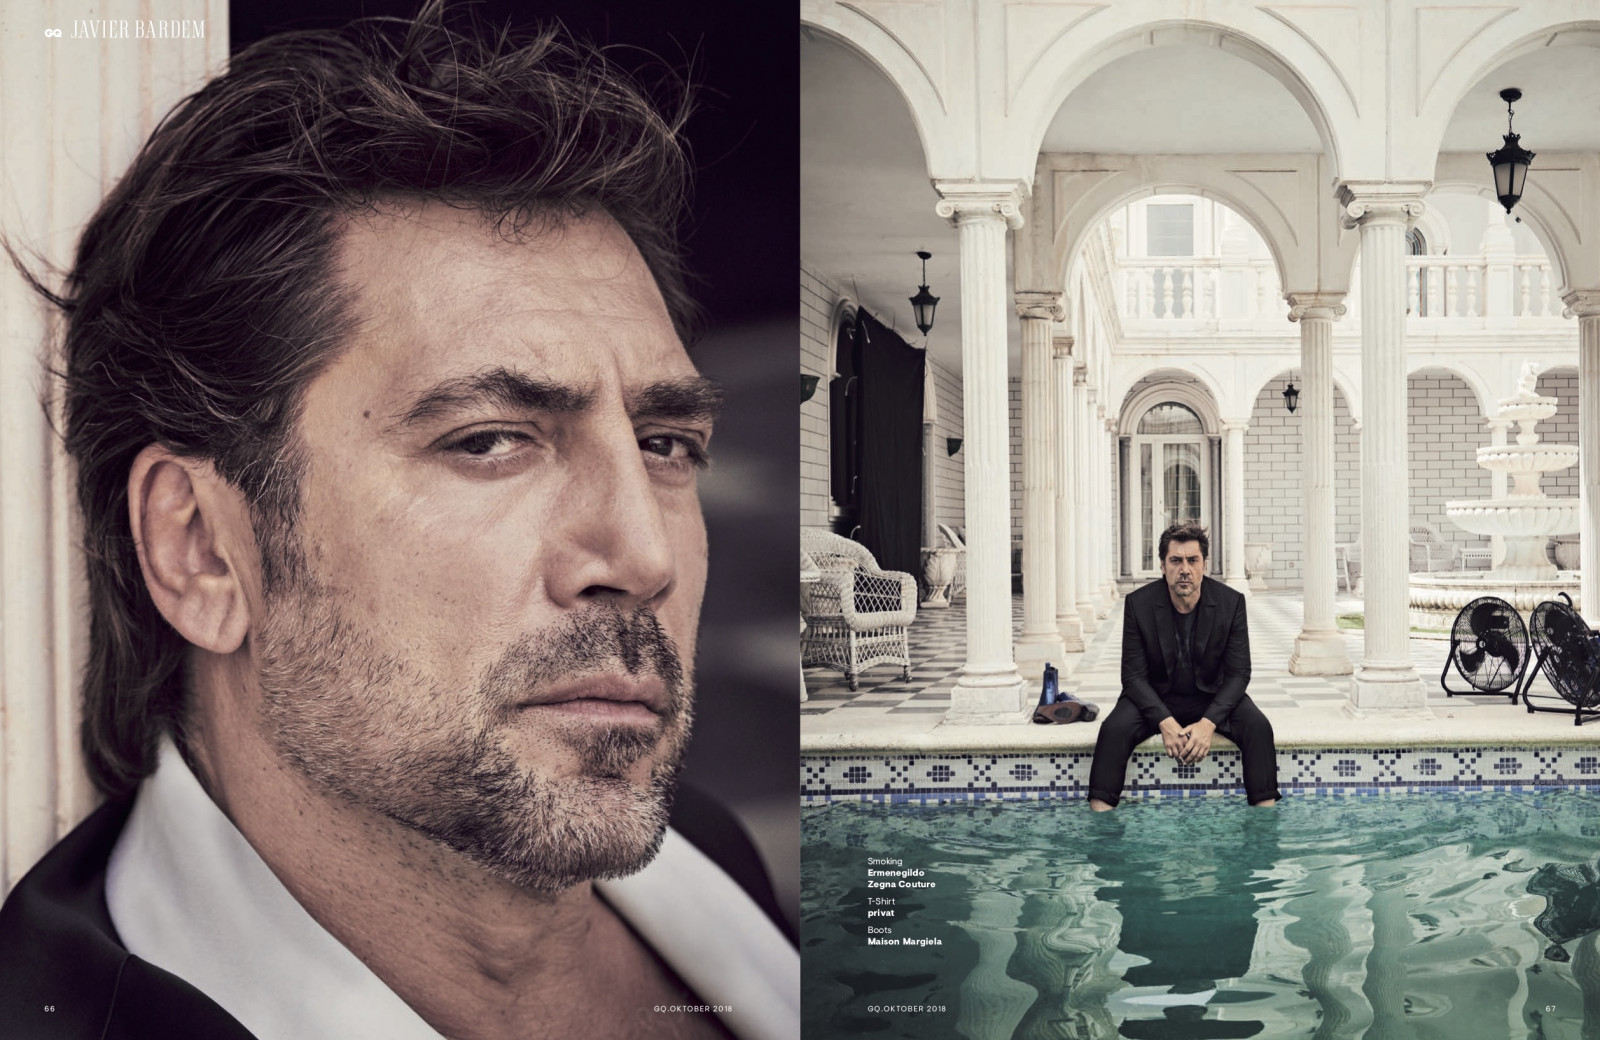 GQ with Javier Bardem 4 by Claudia ENGLMANN